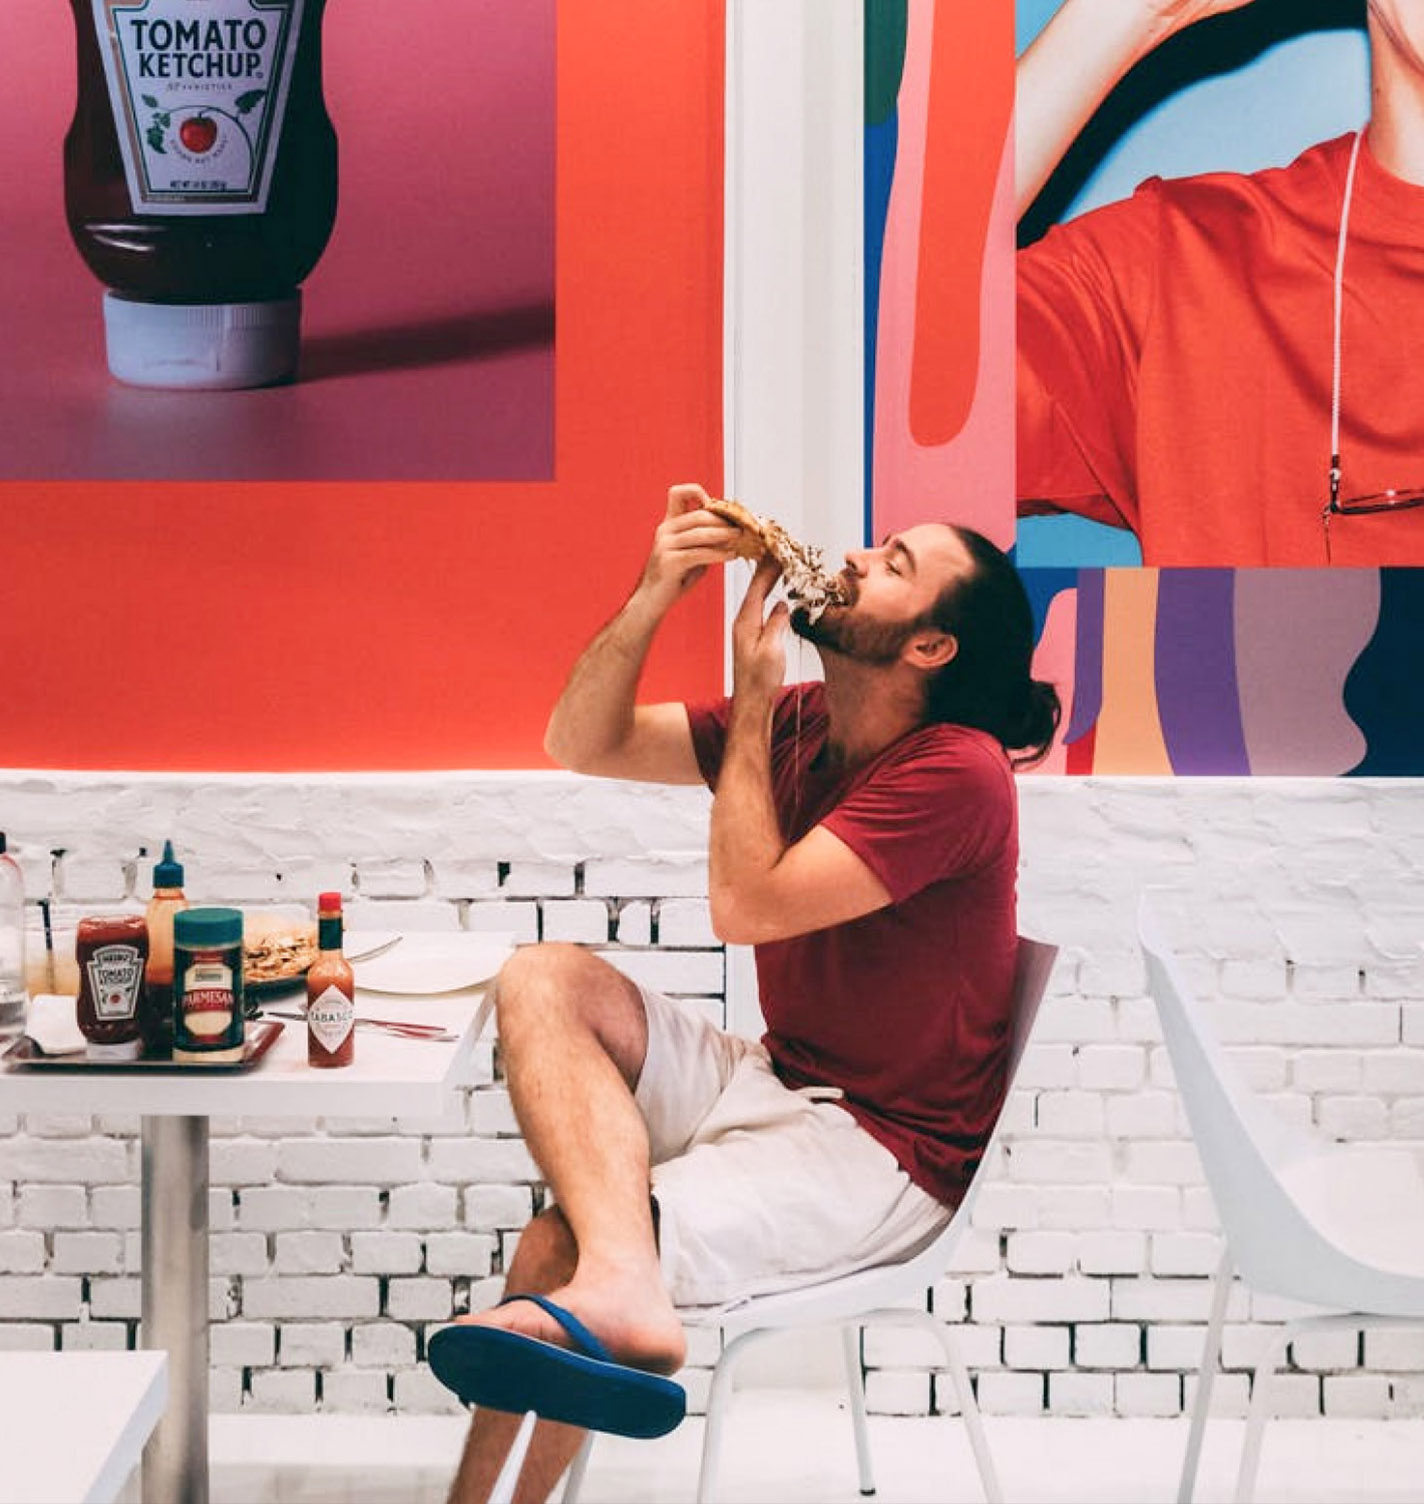 Man eating pizza in flipflops with cheese dripping and condiments on table with big image of ketchup in background